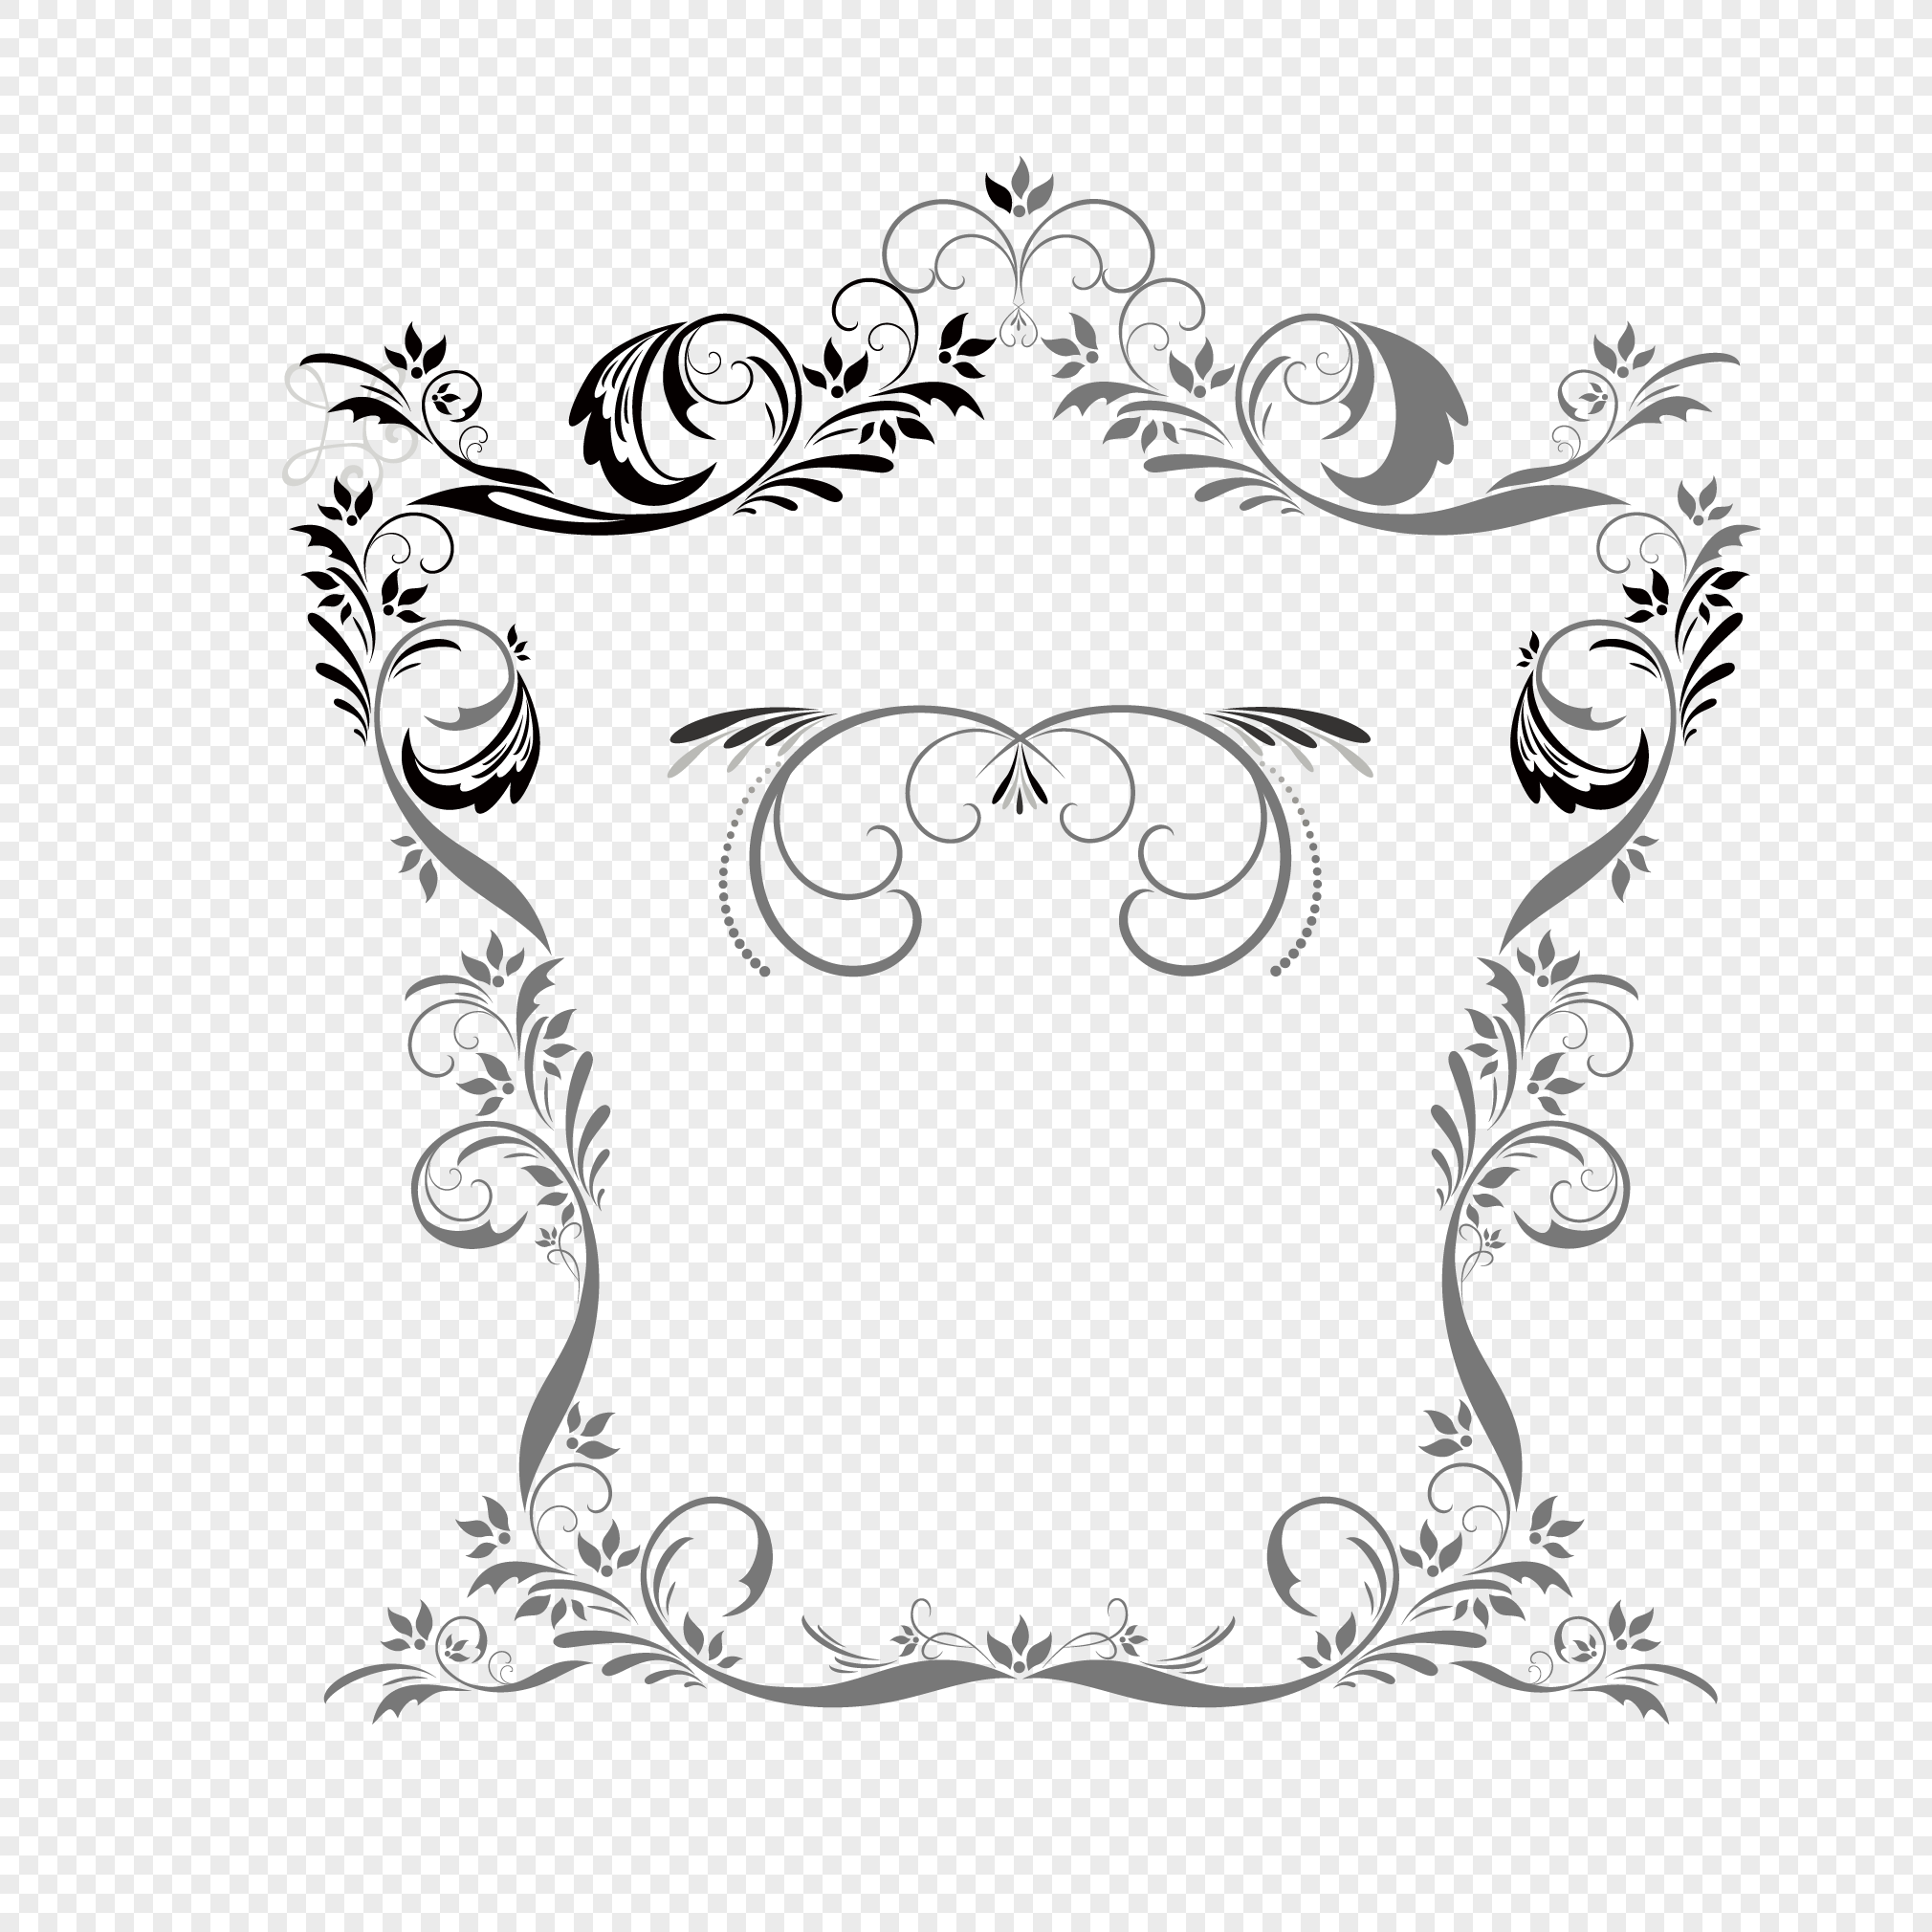 2020x2020 Simple And Fashionable Pattern Border Vector Material Png